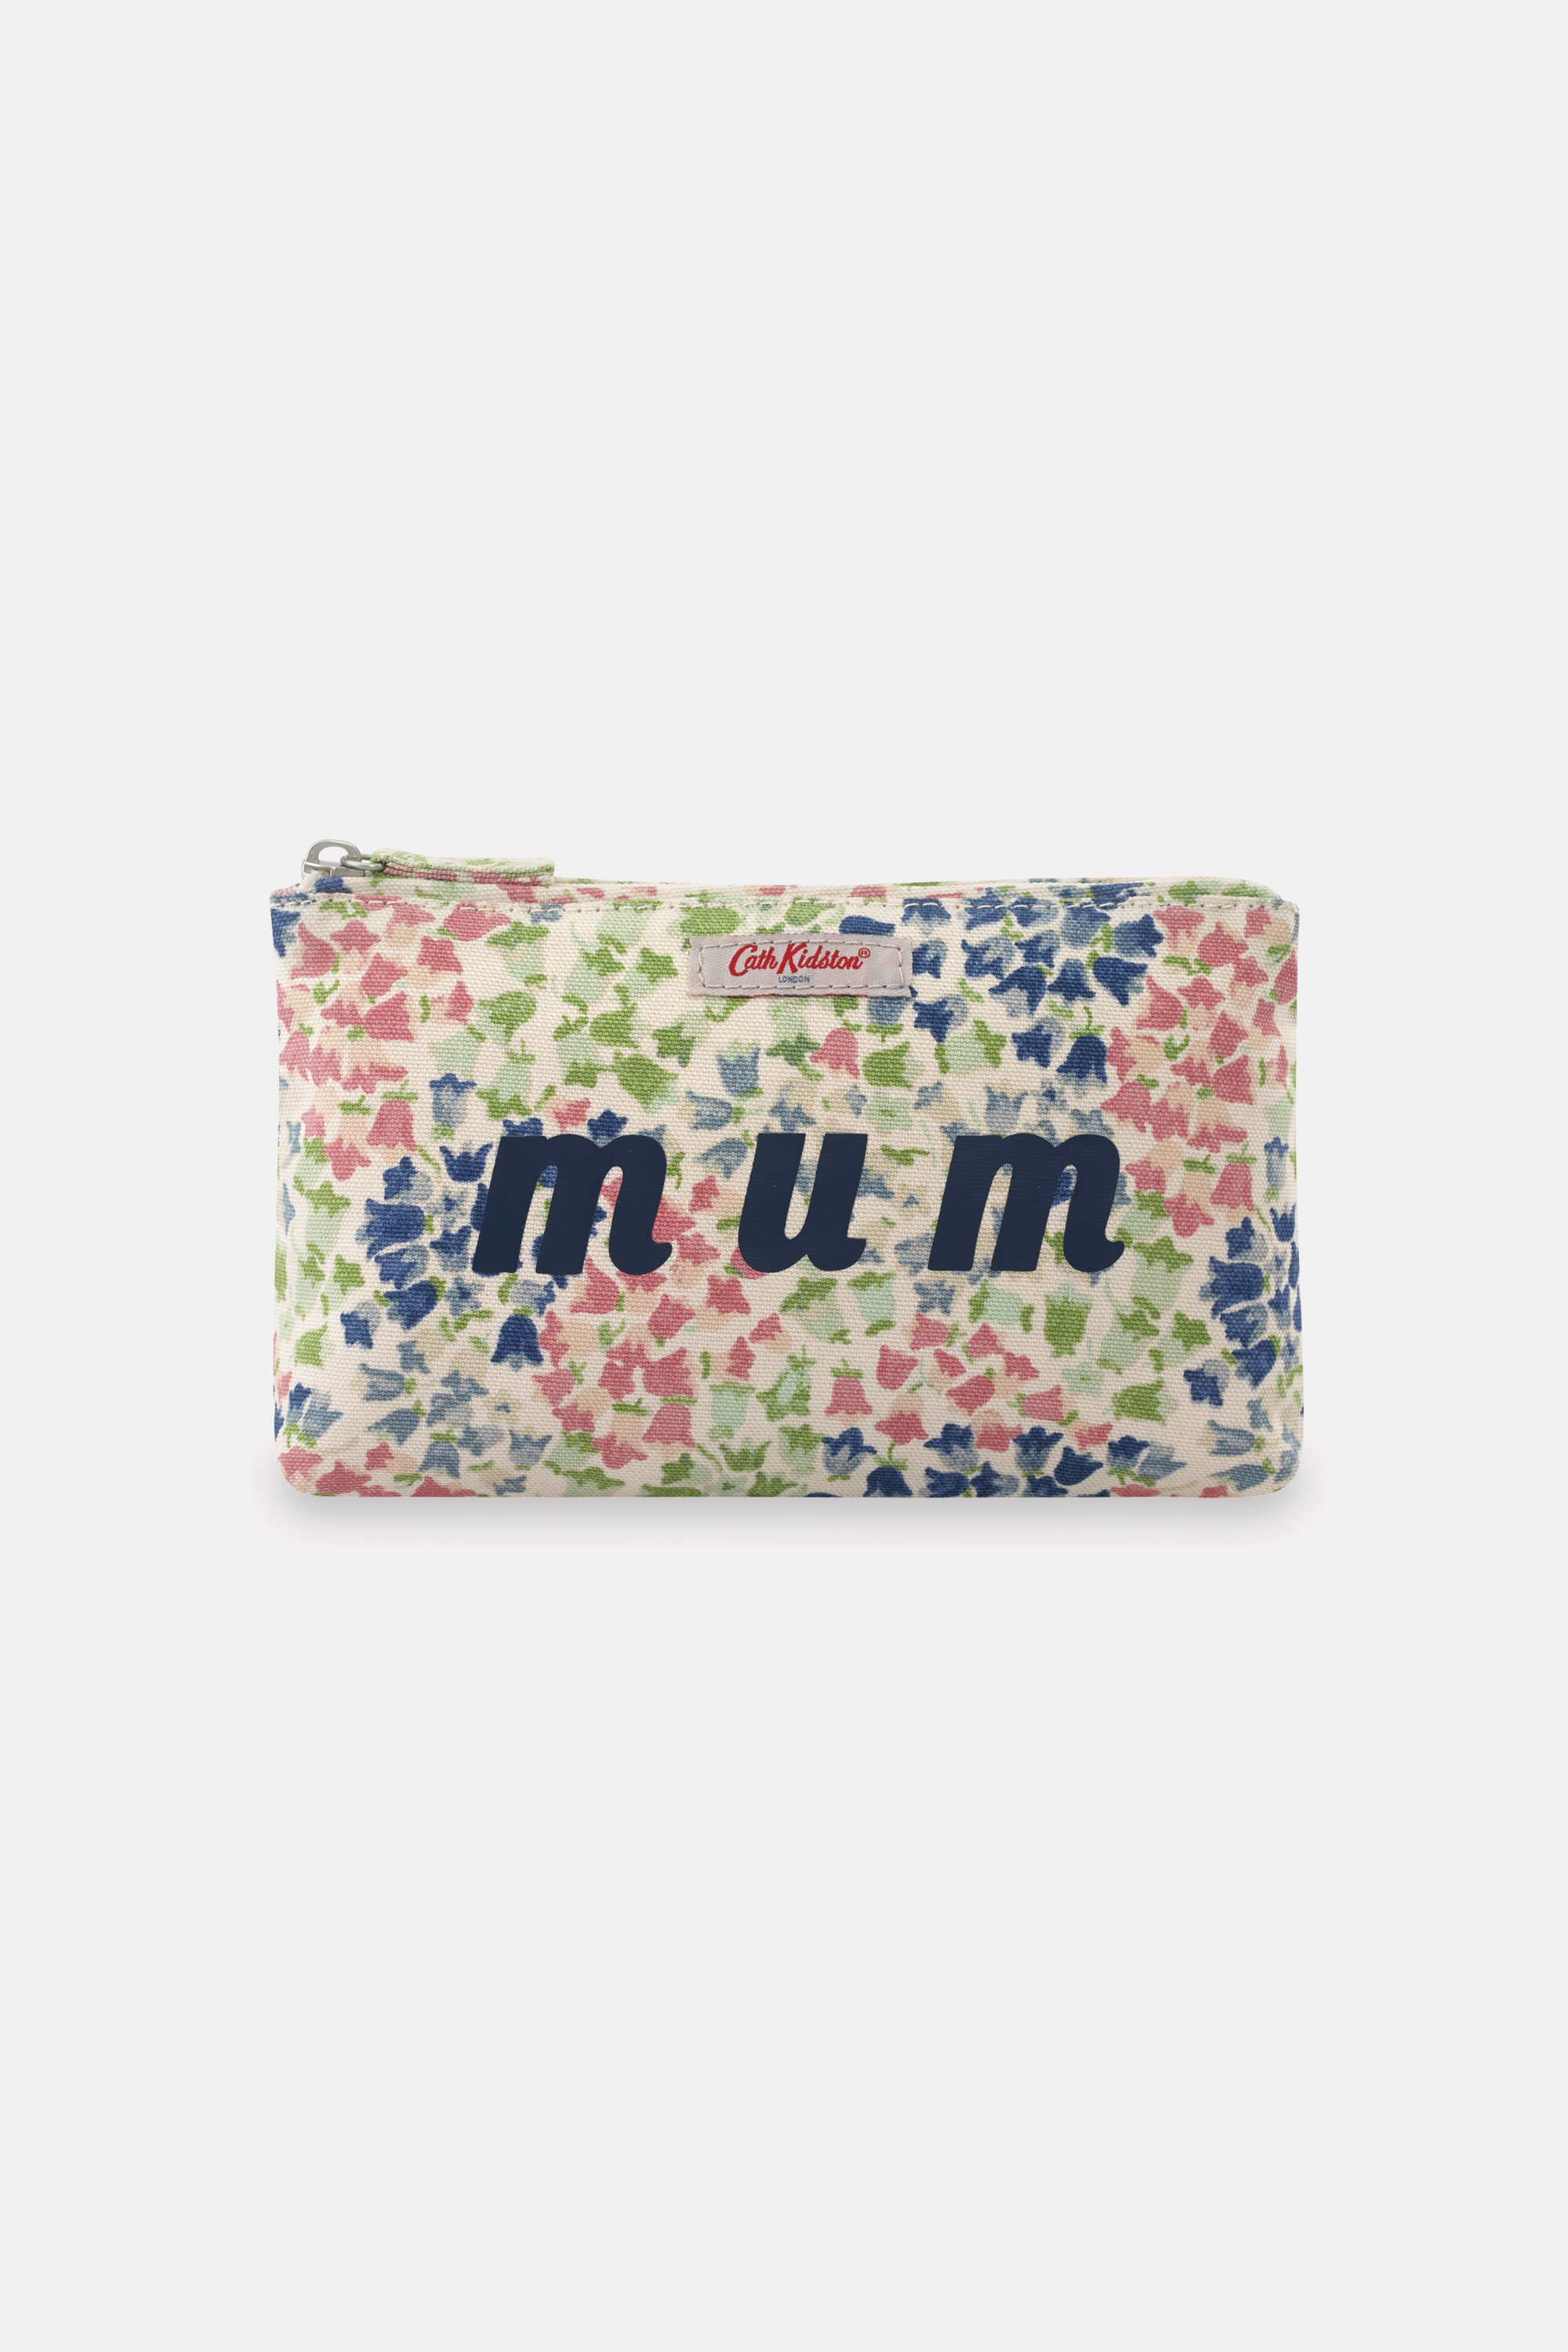 Cath Kidston Painted Bluebell Mum Pouch in Warm Cream